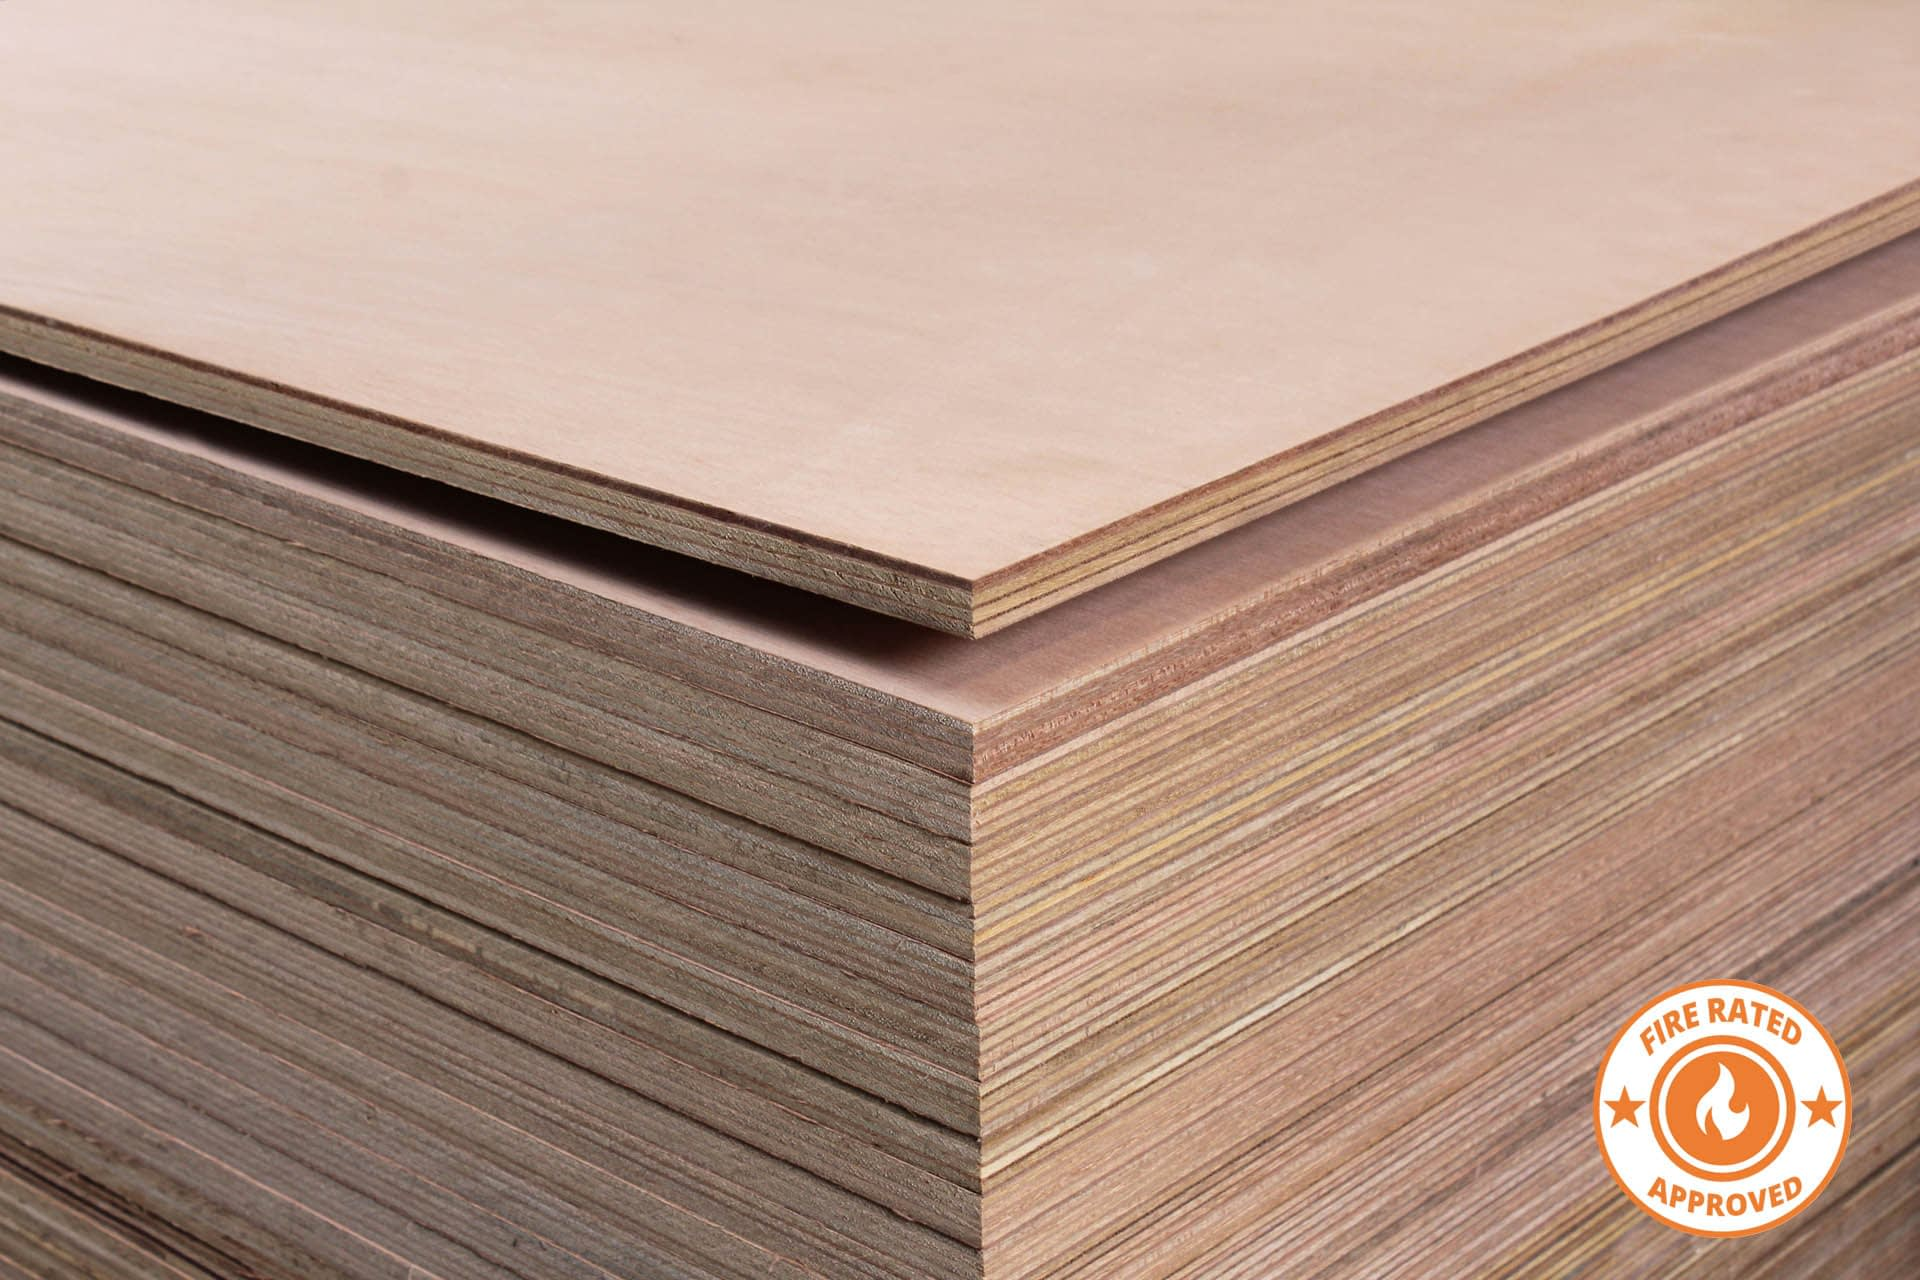 fire-rated-board-plywood-access-panels-protection-kiln-dried-stacked